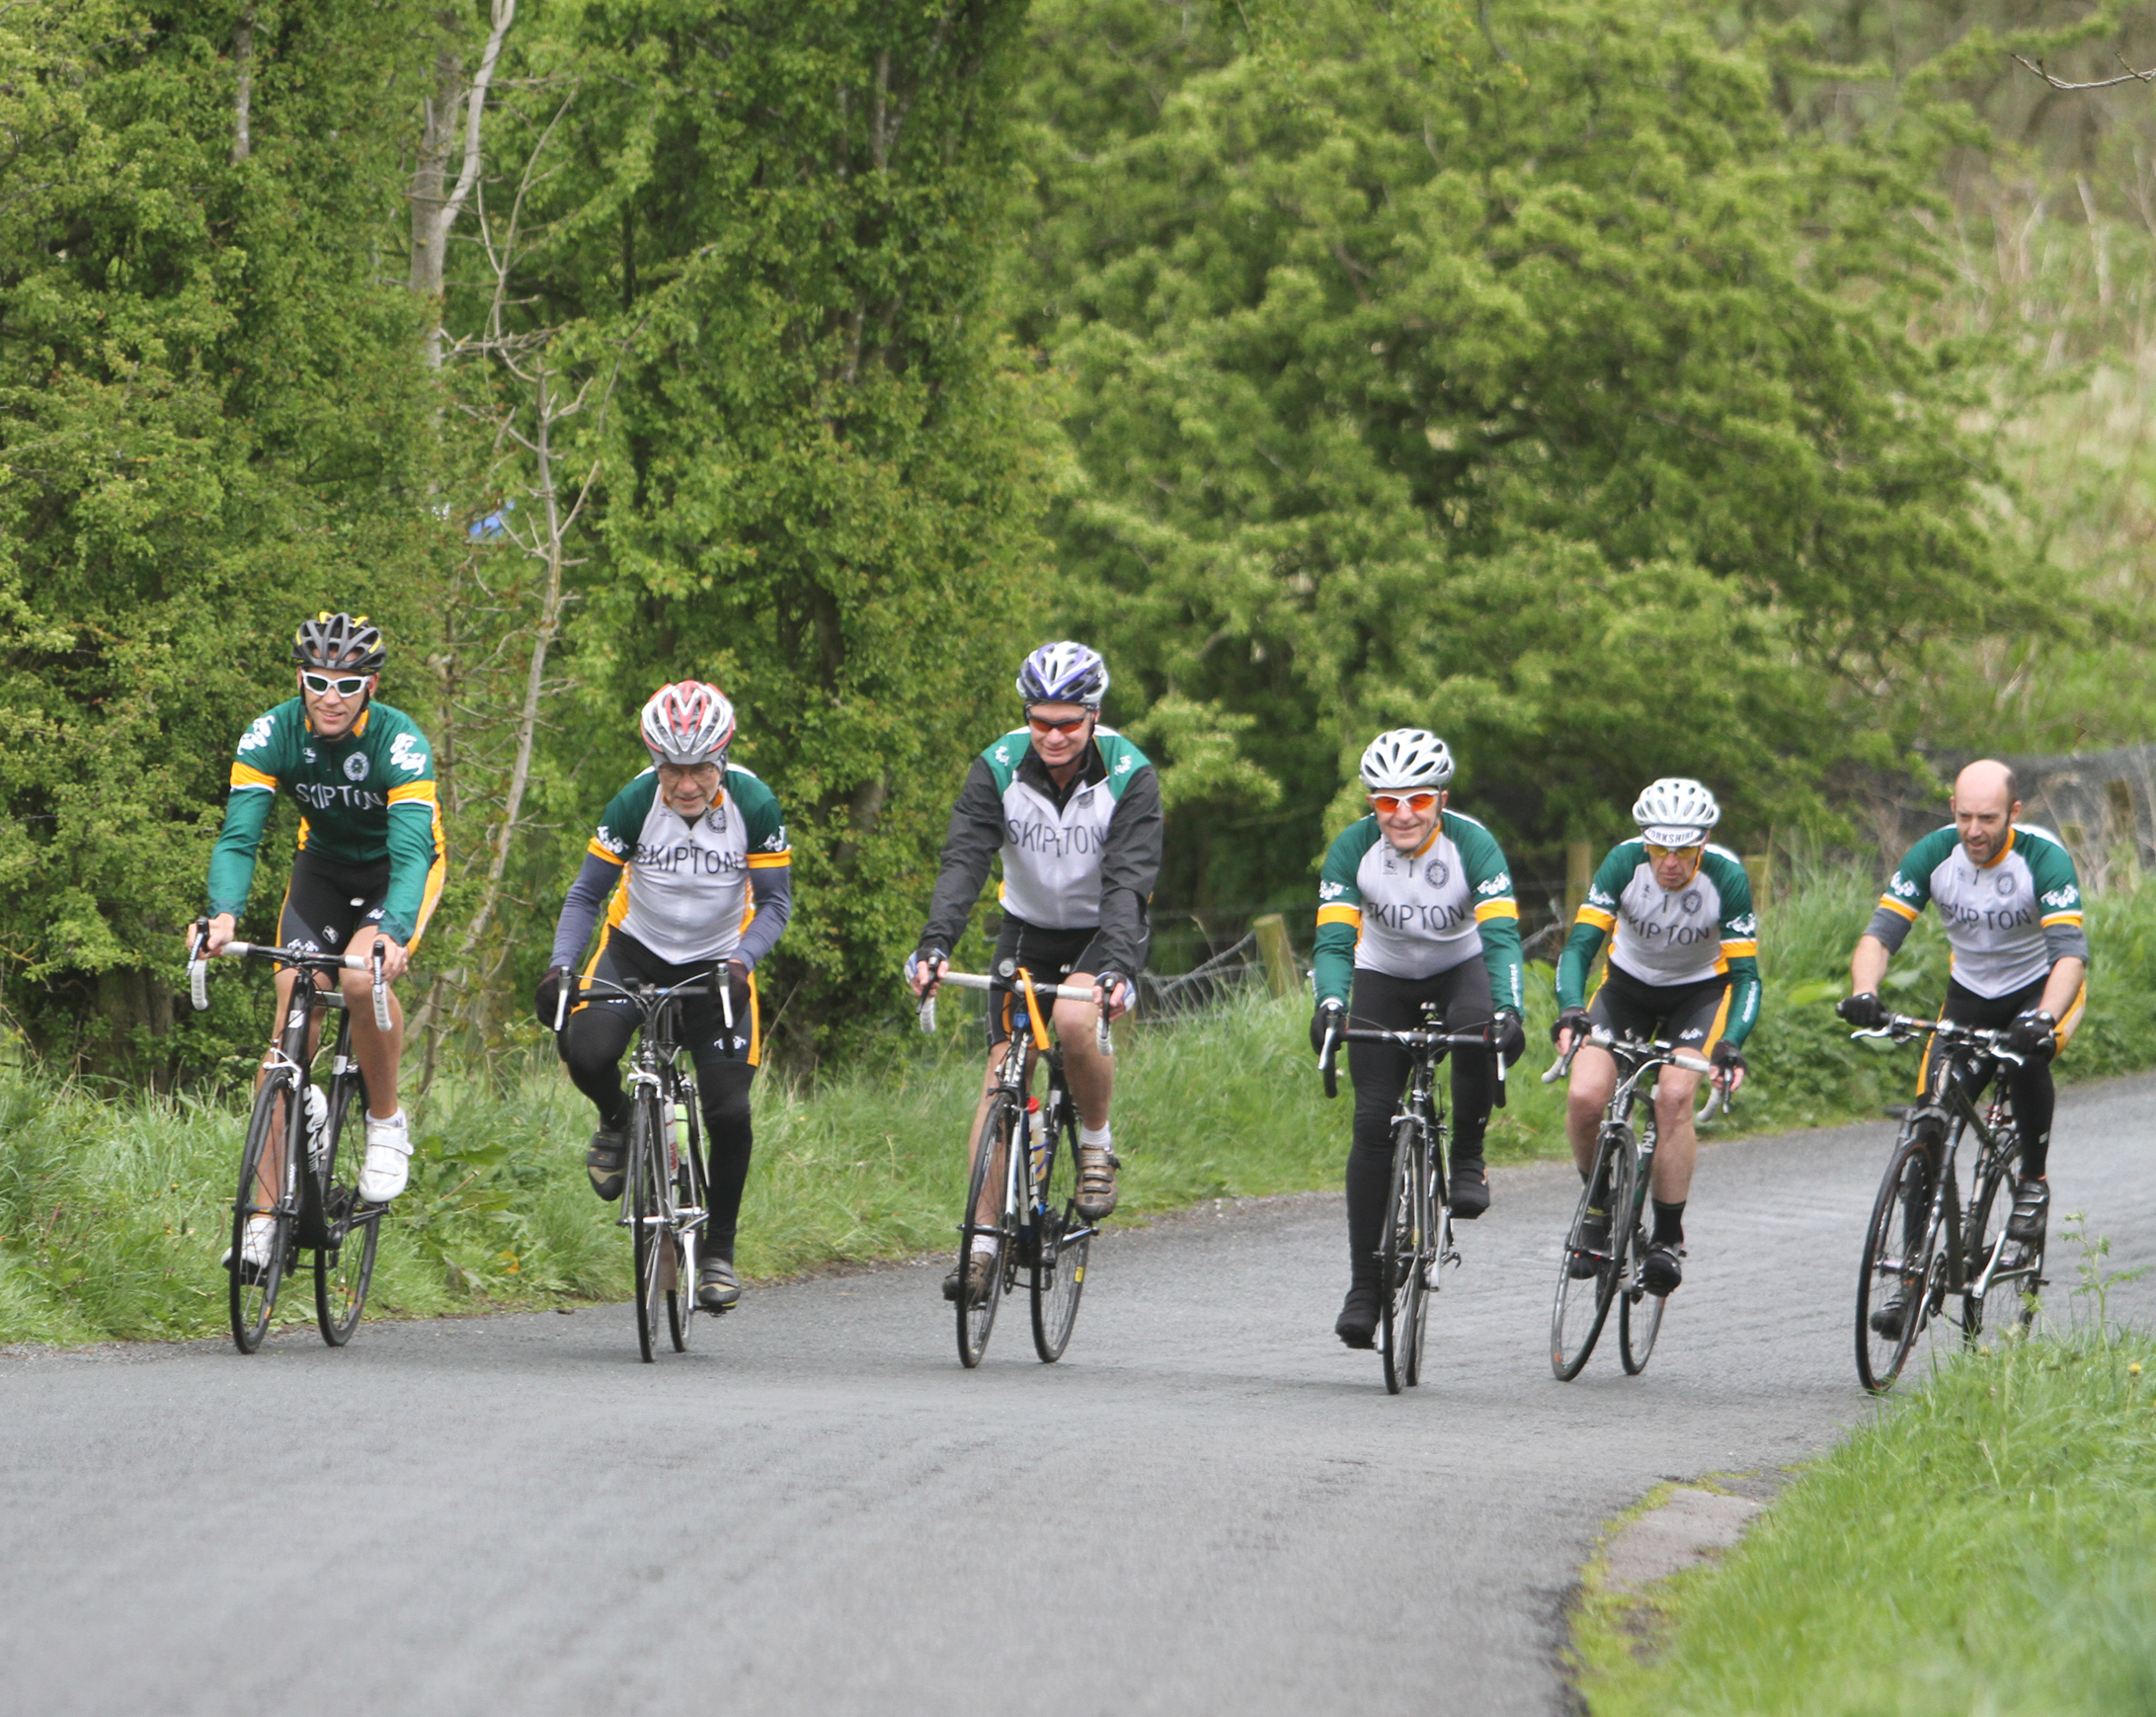 The launch of La Fete du Tour, a celebration of places that feature on the route of the Yorkshire leg of the Grand Depart, with members of Skipton Cycling Club riding near the Craven Heifer, Grassington Road, Skipton